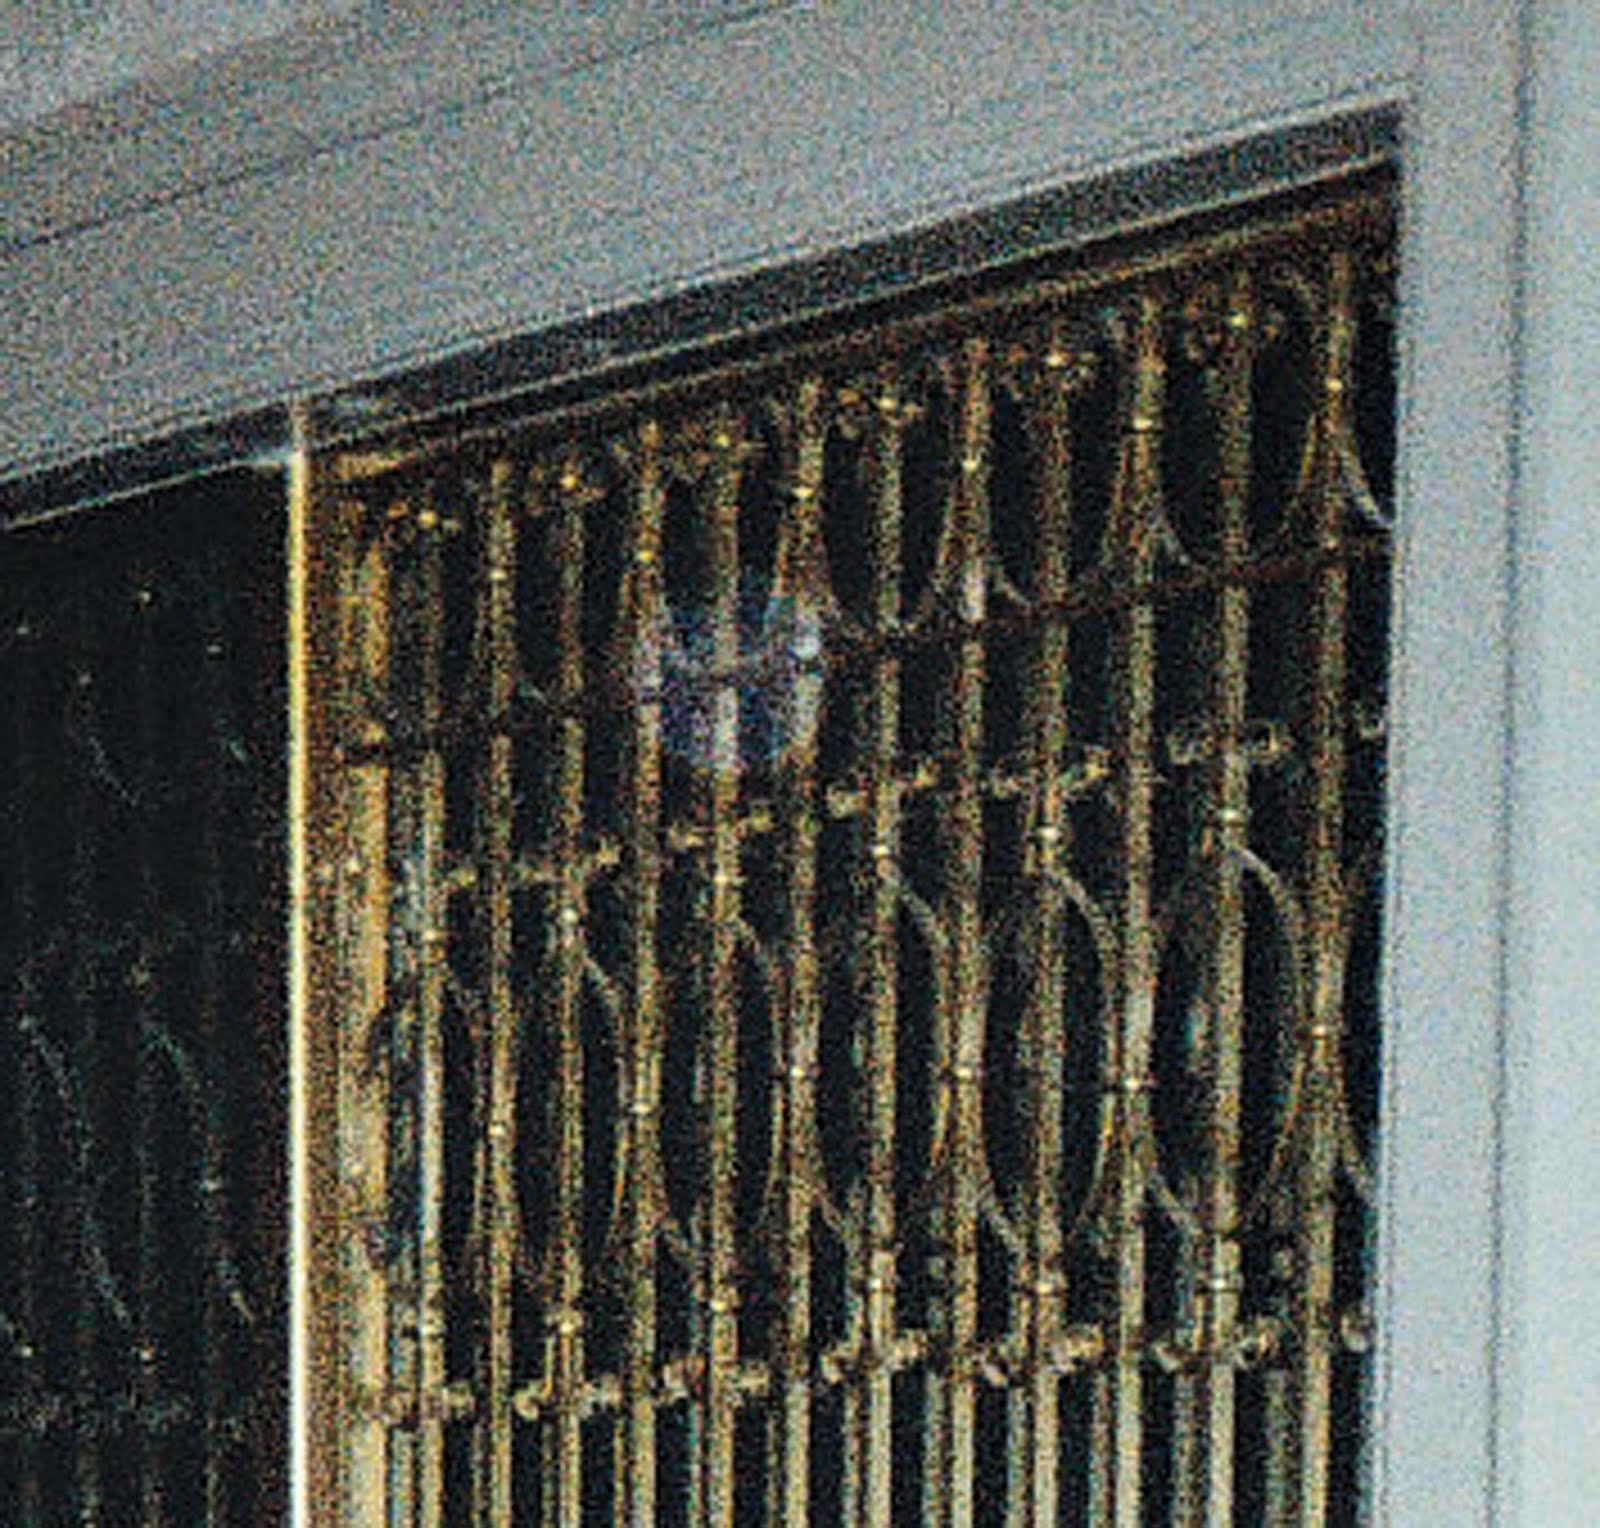 Stanley Hotel Ghost Photographed At Hotel That Inspired: Freshbloodfaceweb: The Stanley Hotel :GHosts?